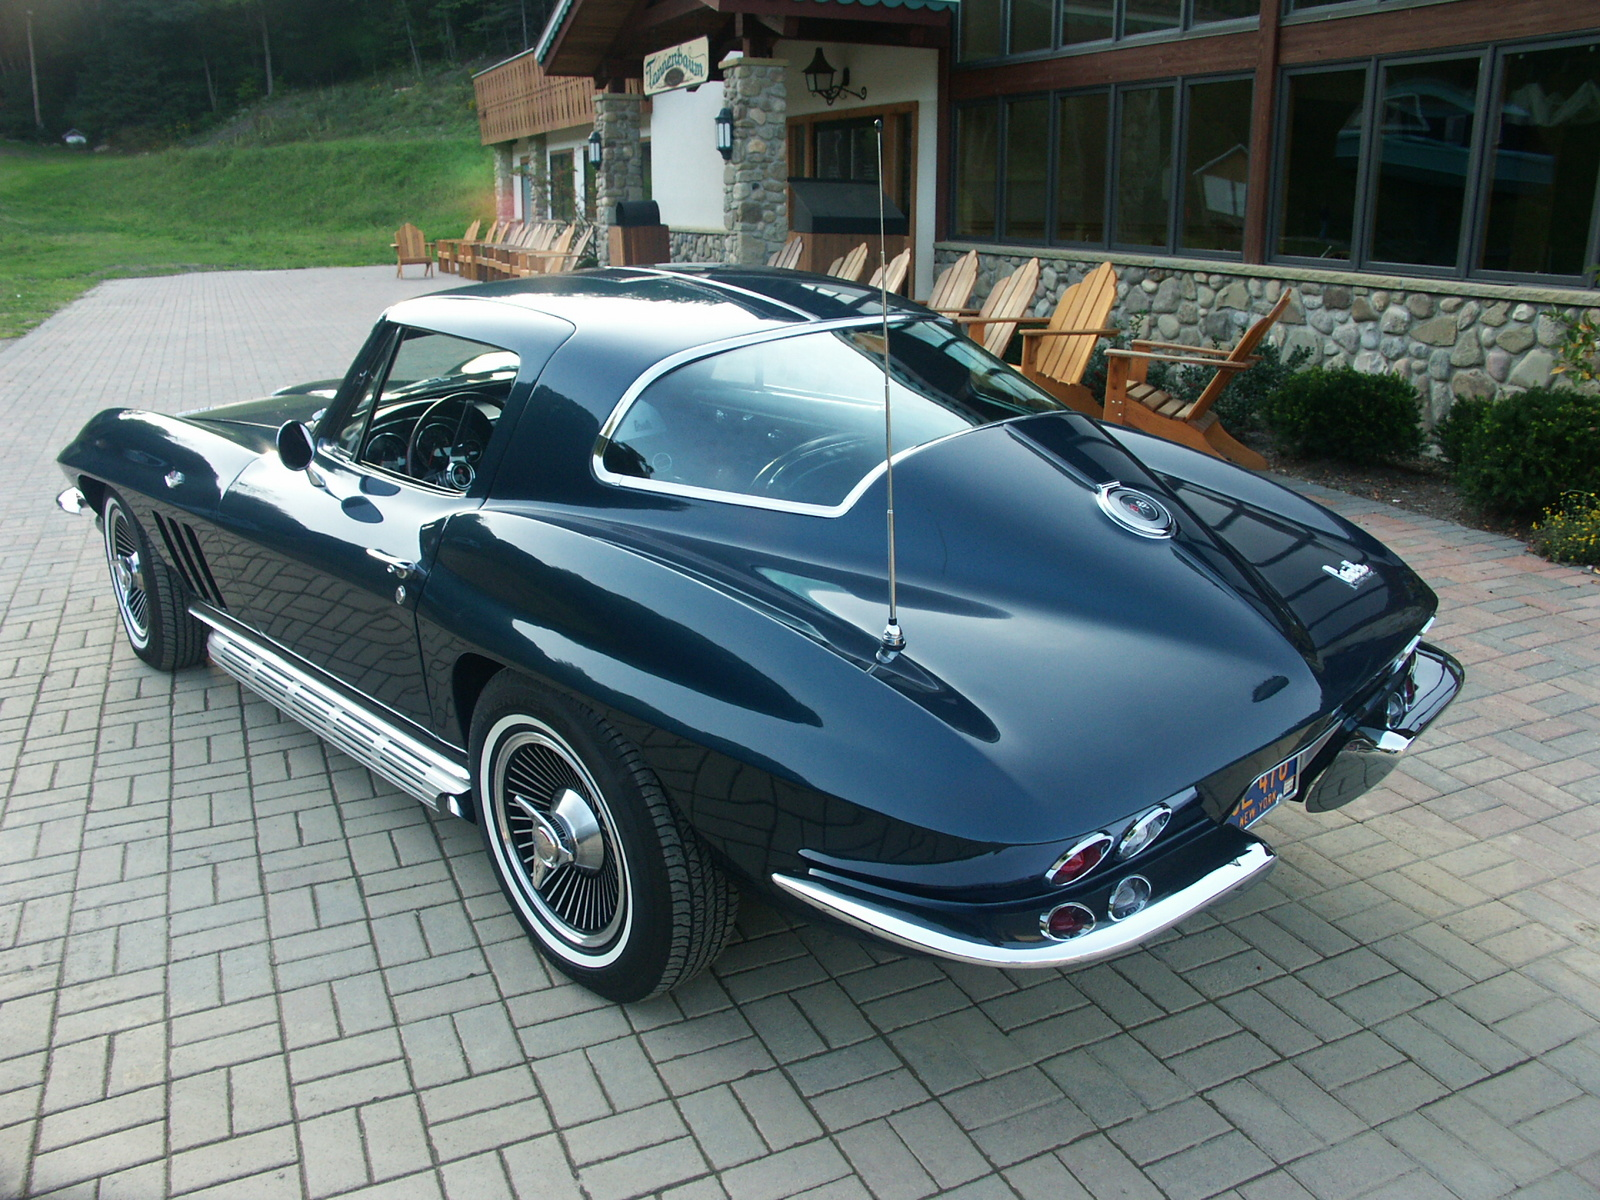 1966 Chevrolet Corvette Coupe picture, exterior